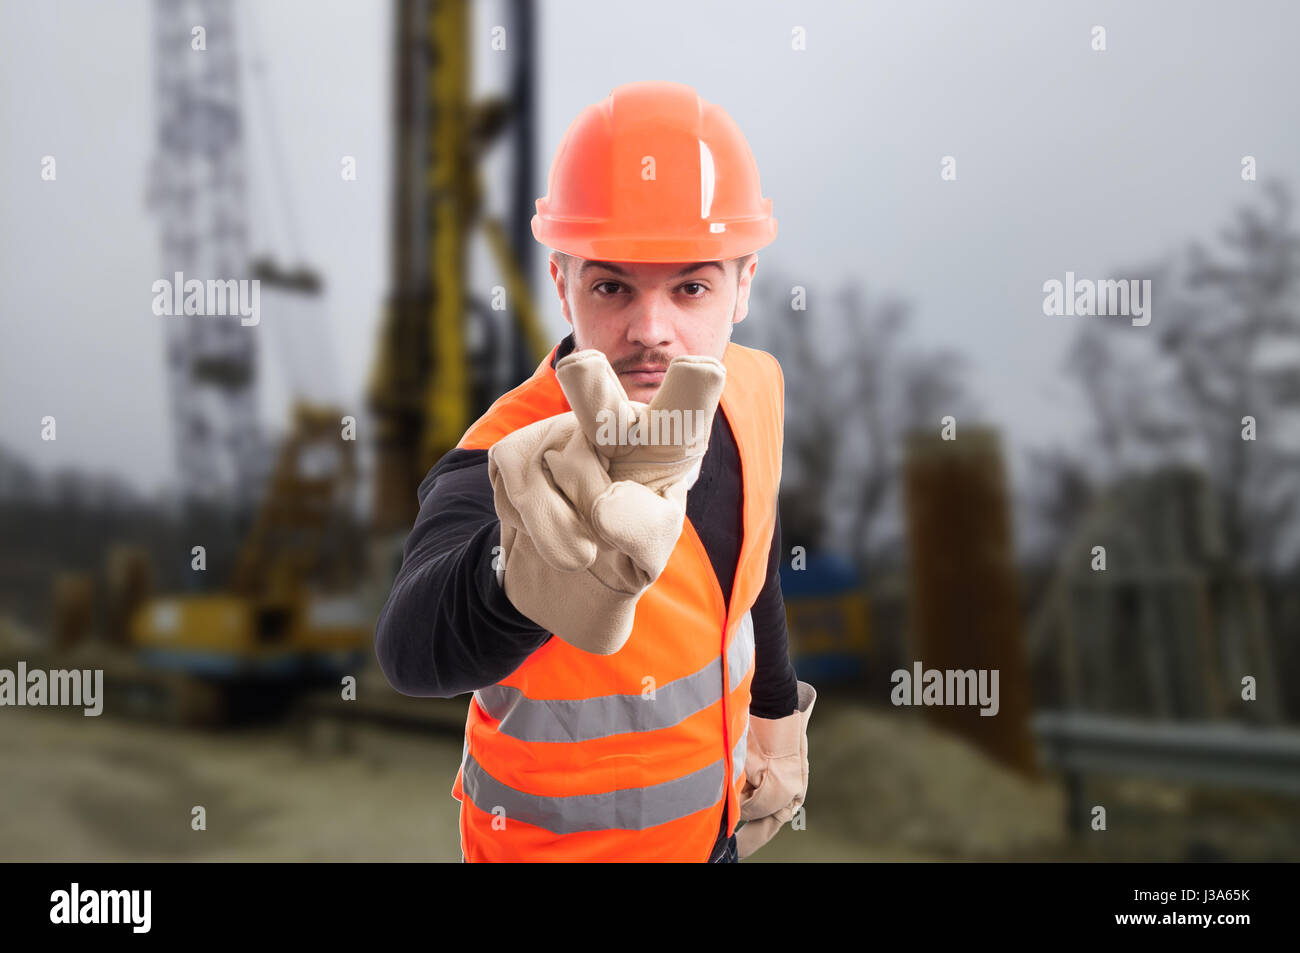 Attractive builder doing I'm watching you gesture as intimidation concept on construction site - Stock Image